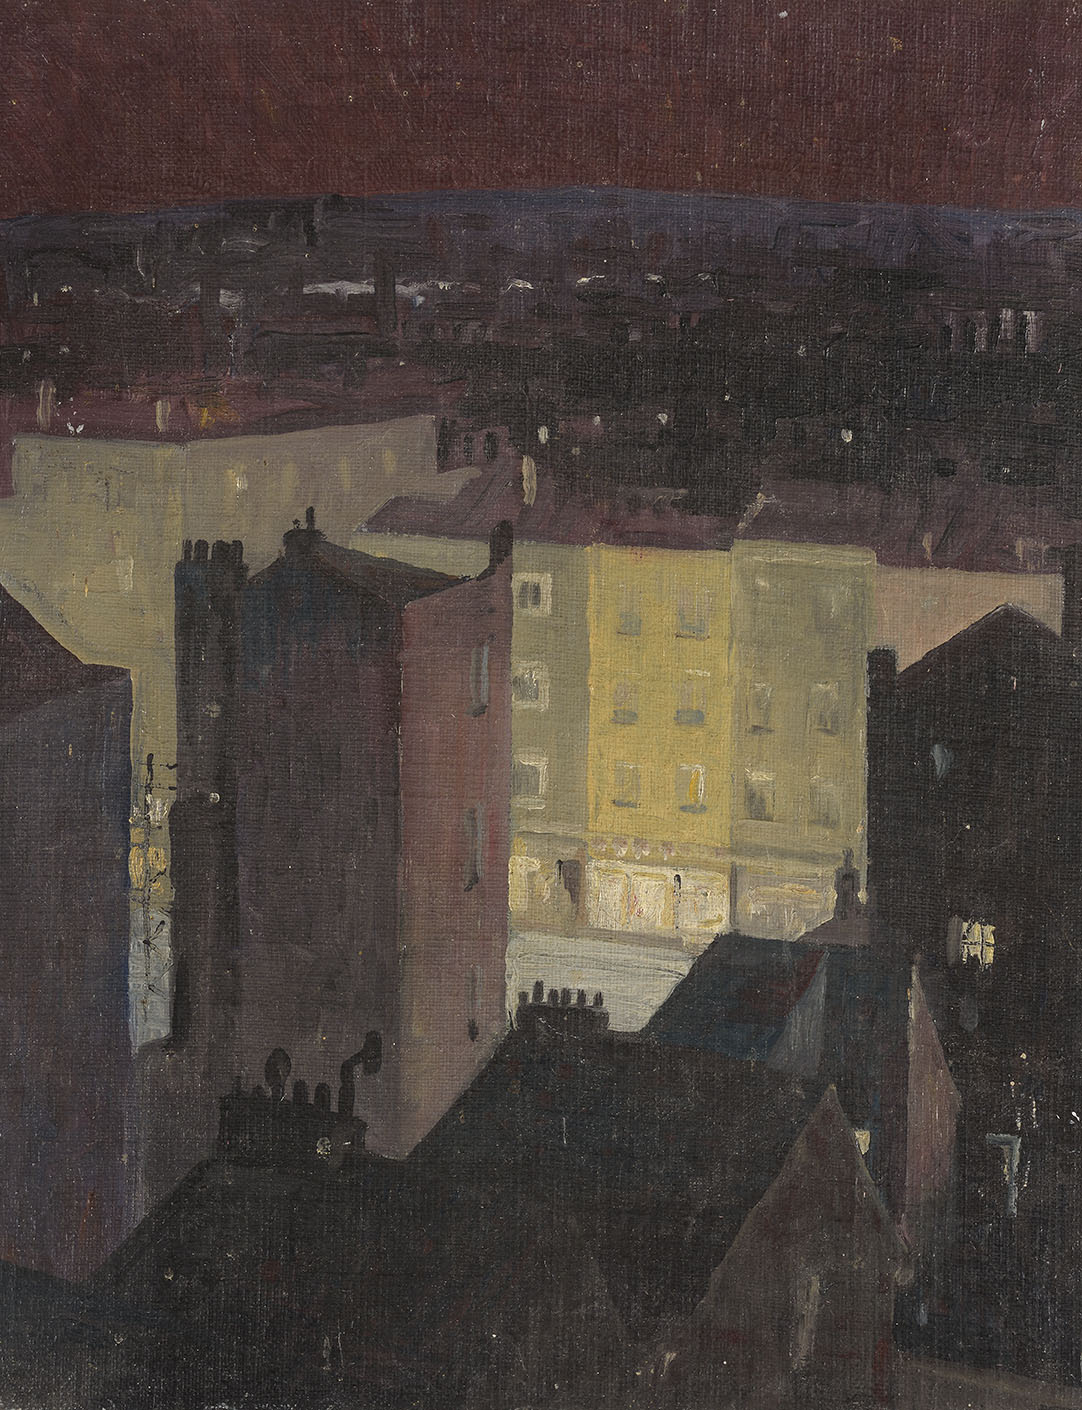 Malcolm H Carter (c.1920-1983)    Marylebone Nocturne,  c.1970, Oil on canvas laid on board, 20 x 16 in  [CAS 23] Acquired in 1973